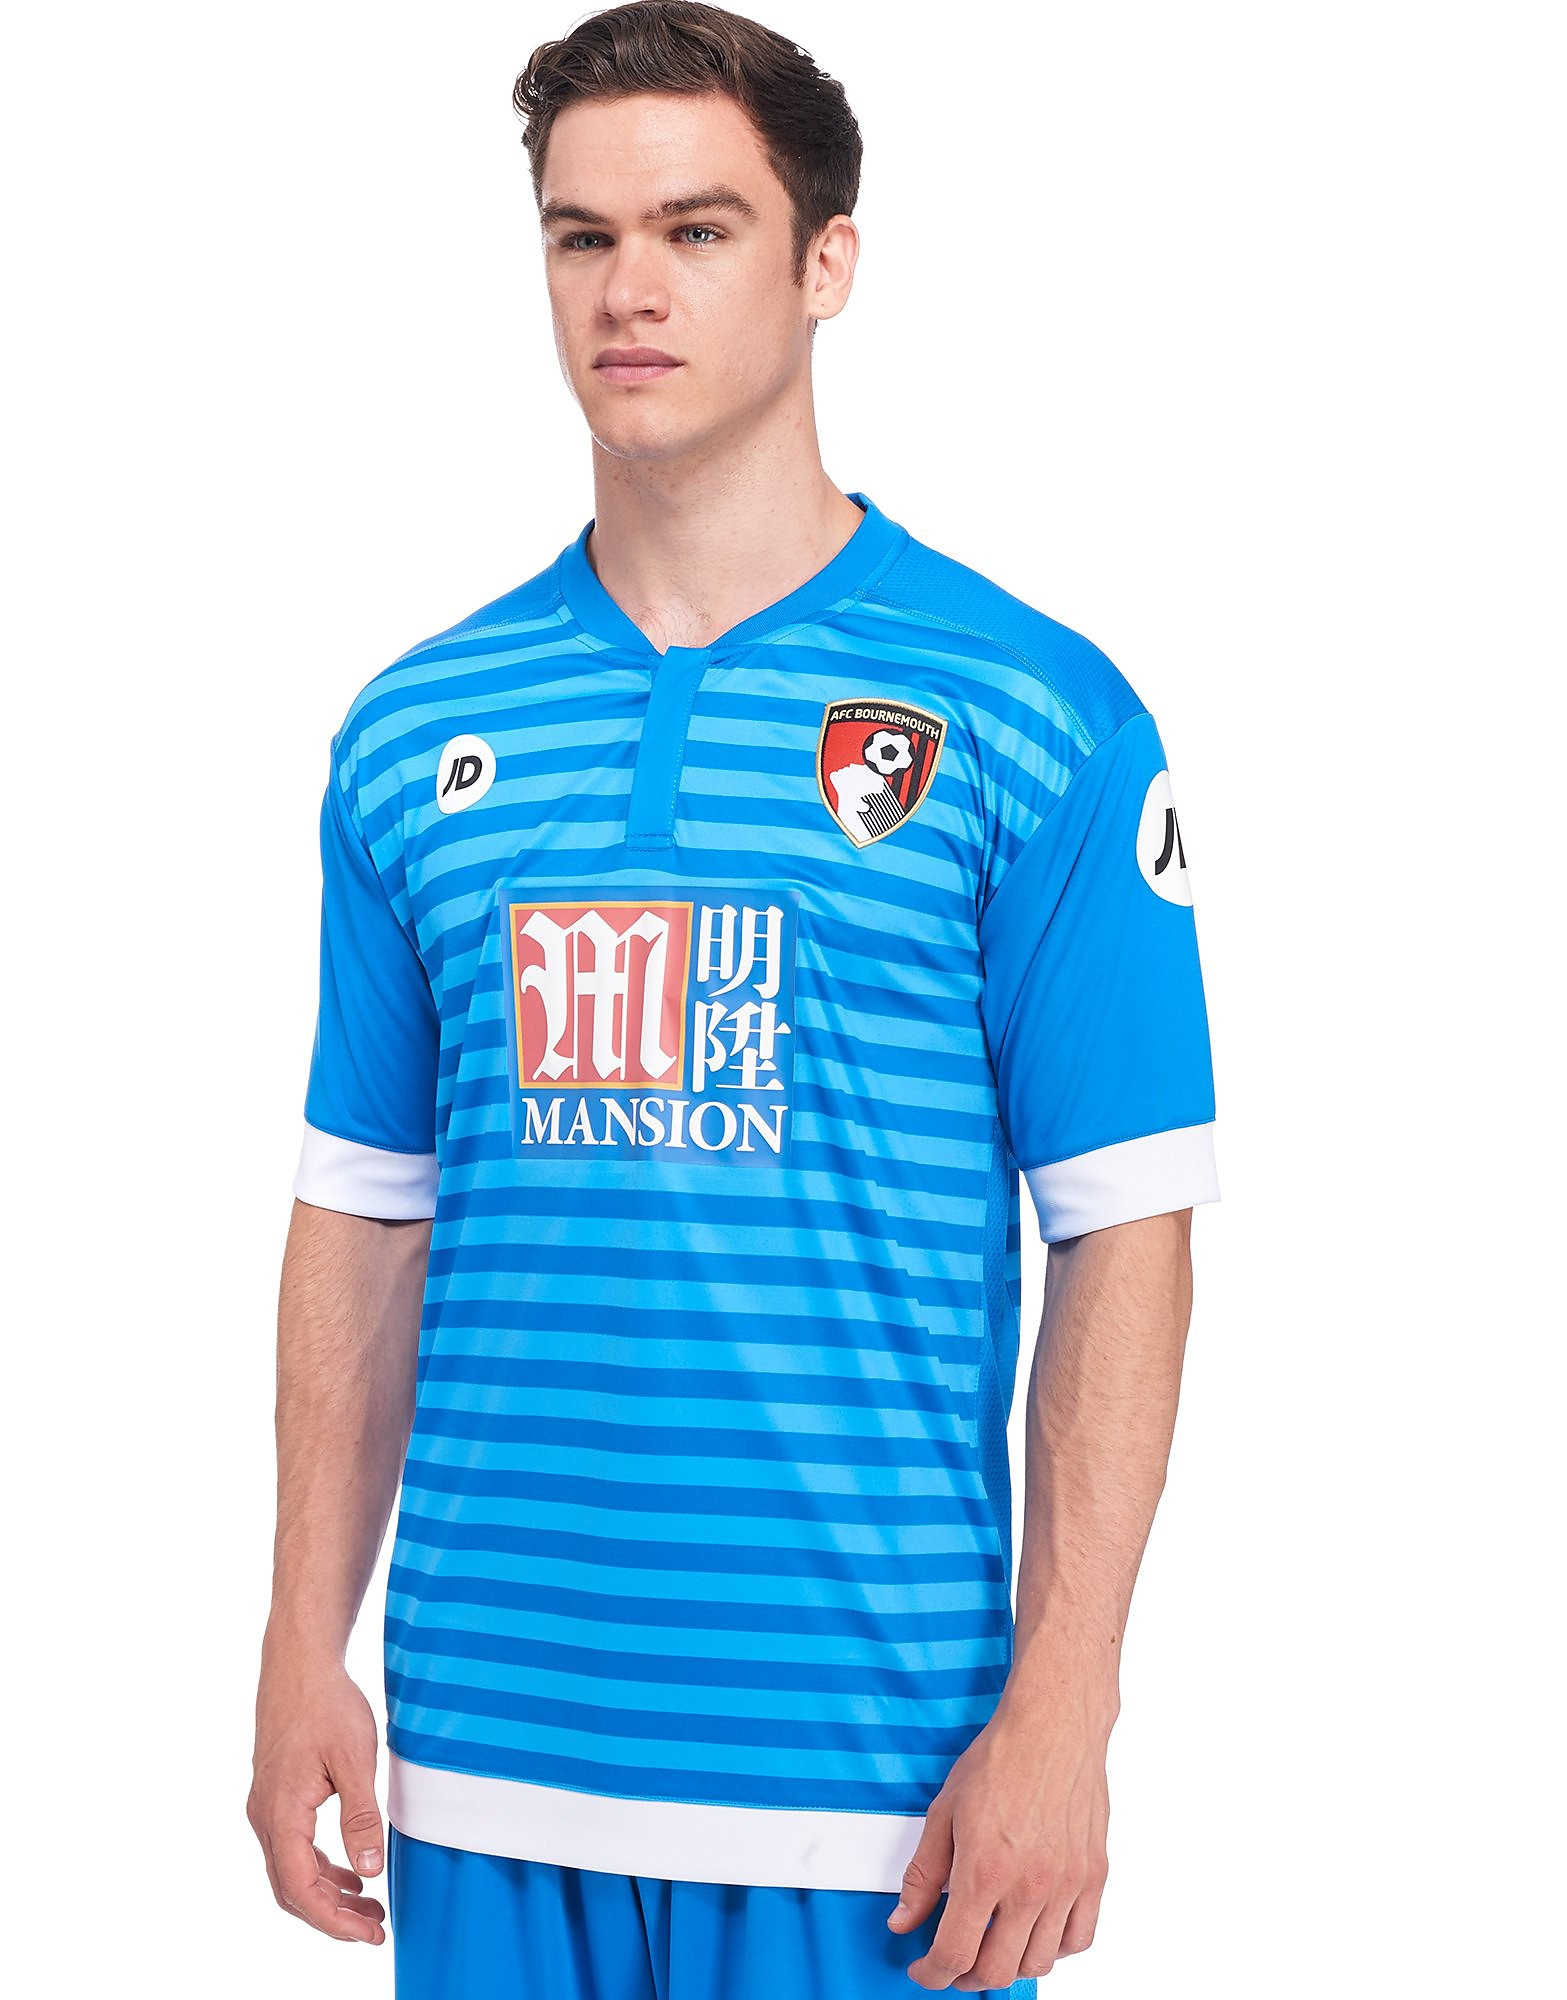 JD AFC Bournemouth 2016/17 Away Shirt